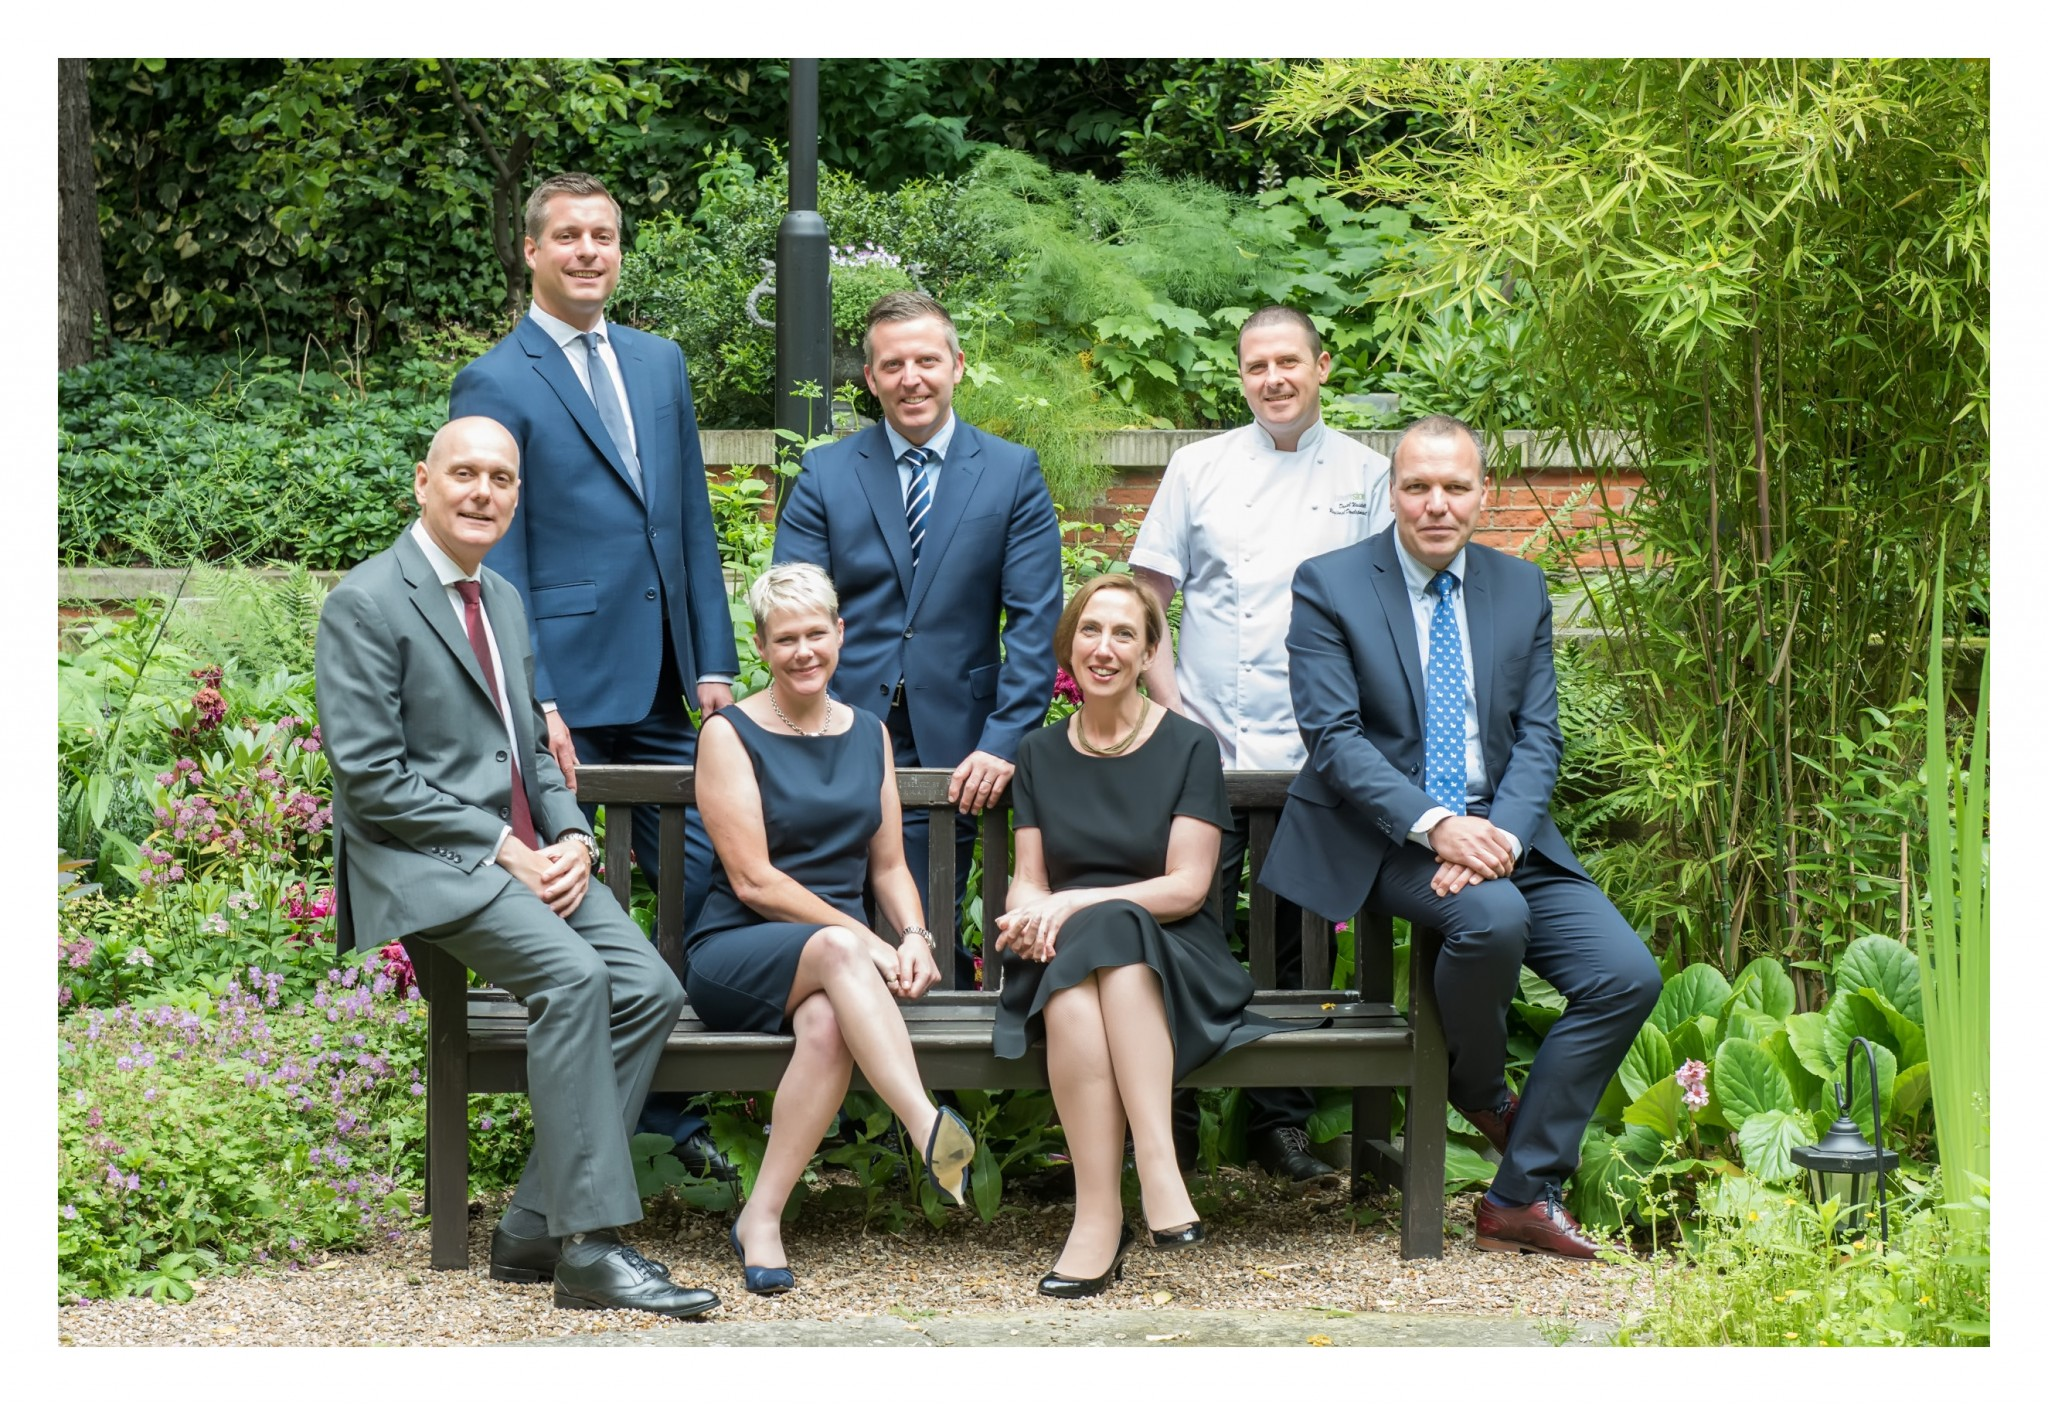 Staff Headshots and Portrait Photography for Contract Catering Company Baxterstorey